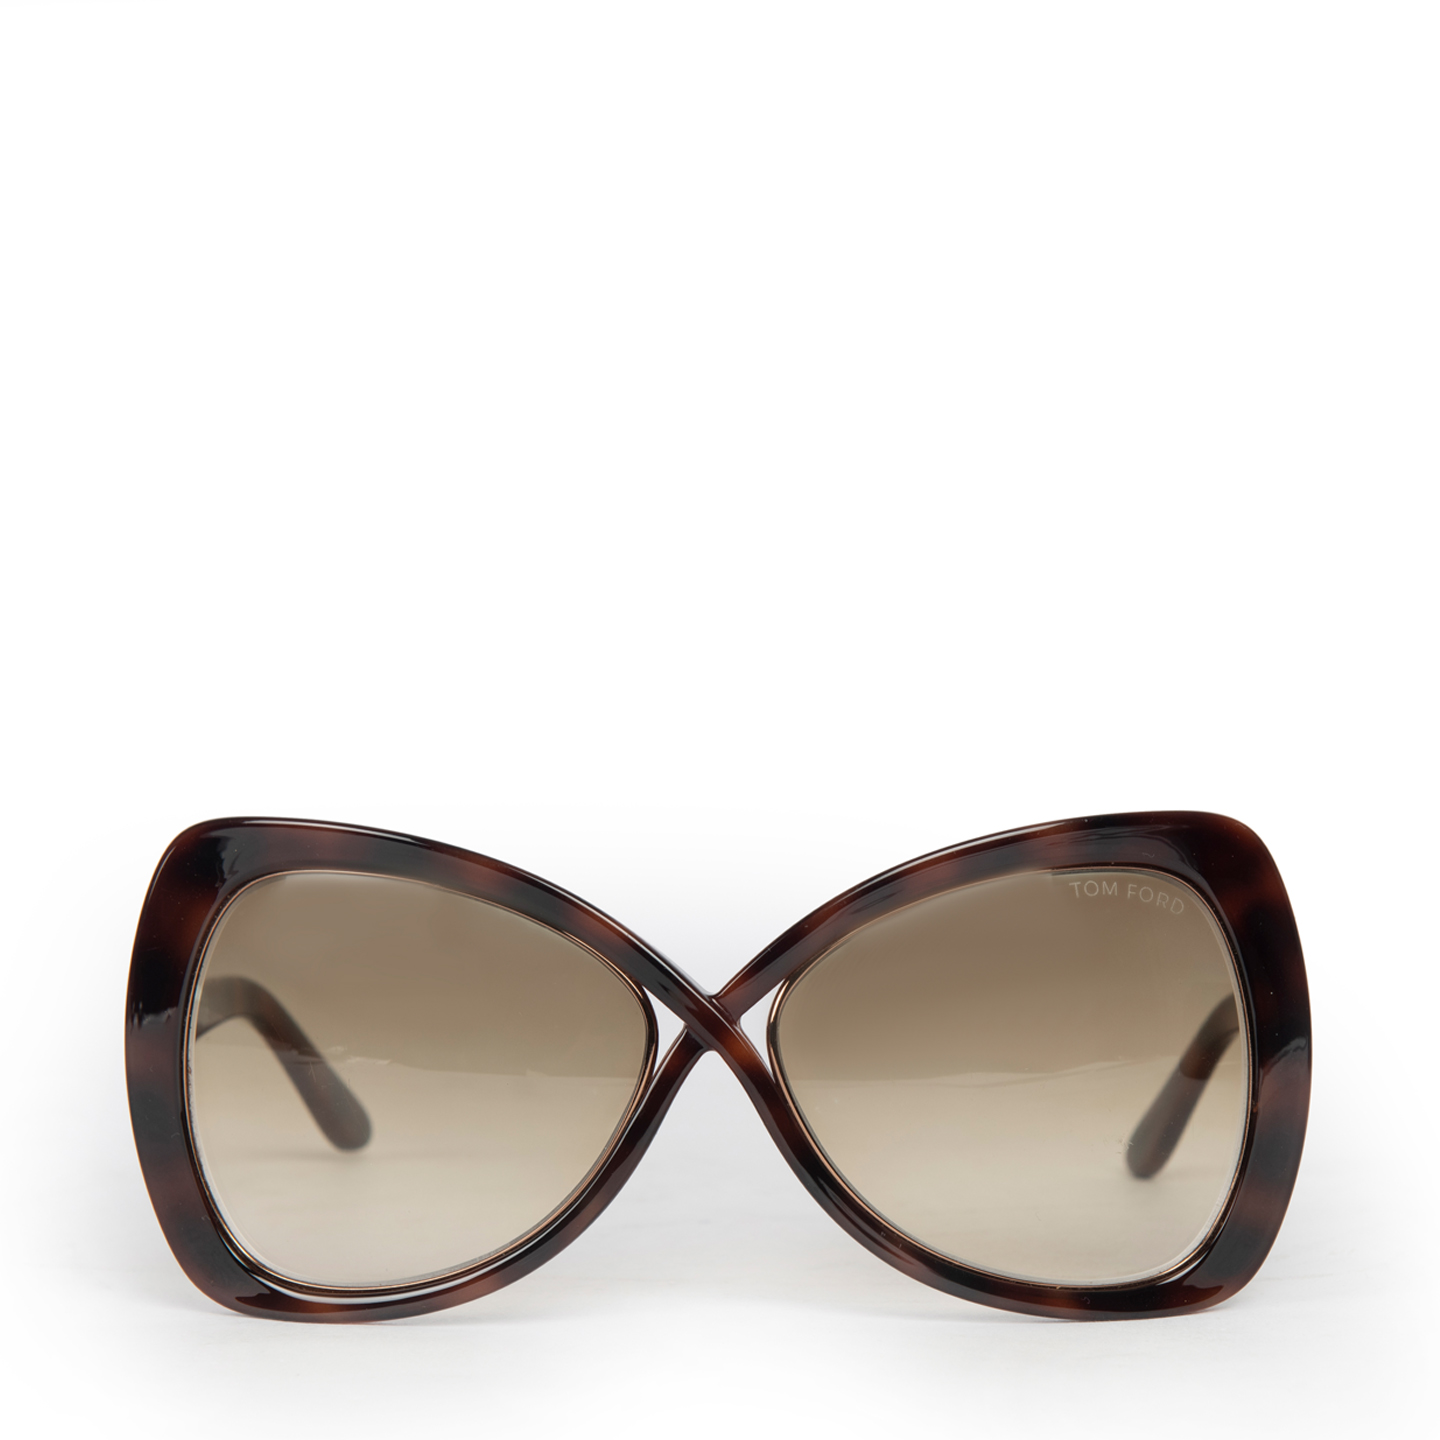 Tom Ford Jade Square Oversized Sunglasses TF277 (01)